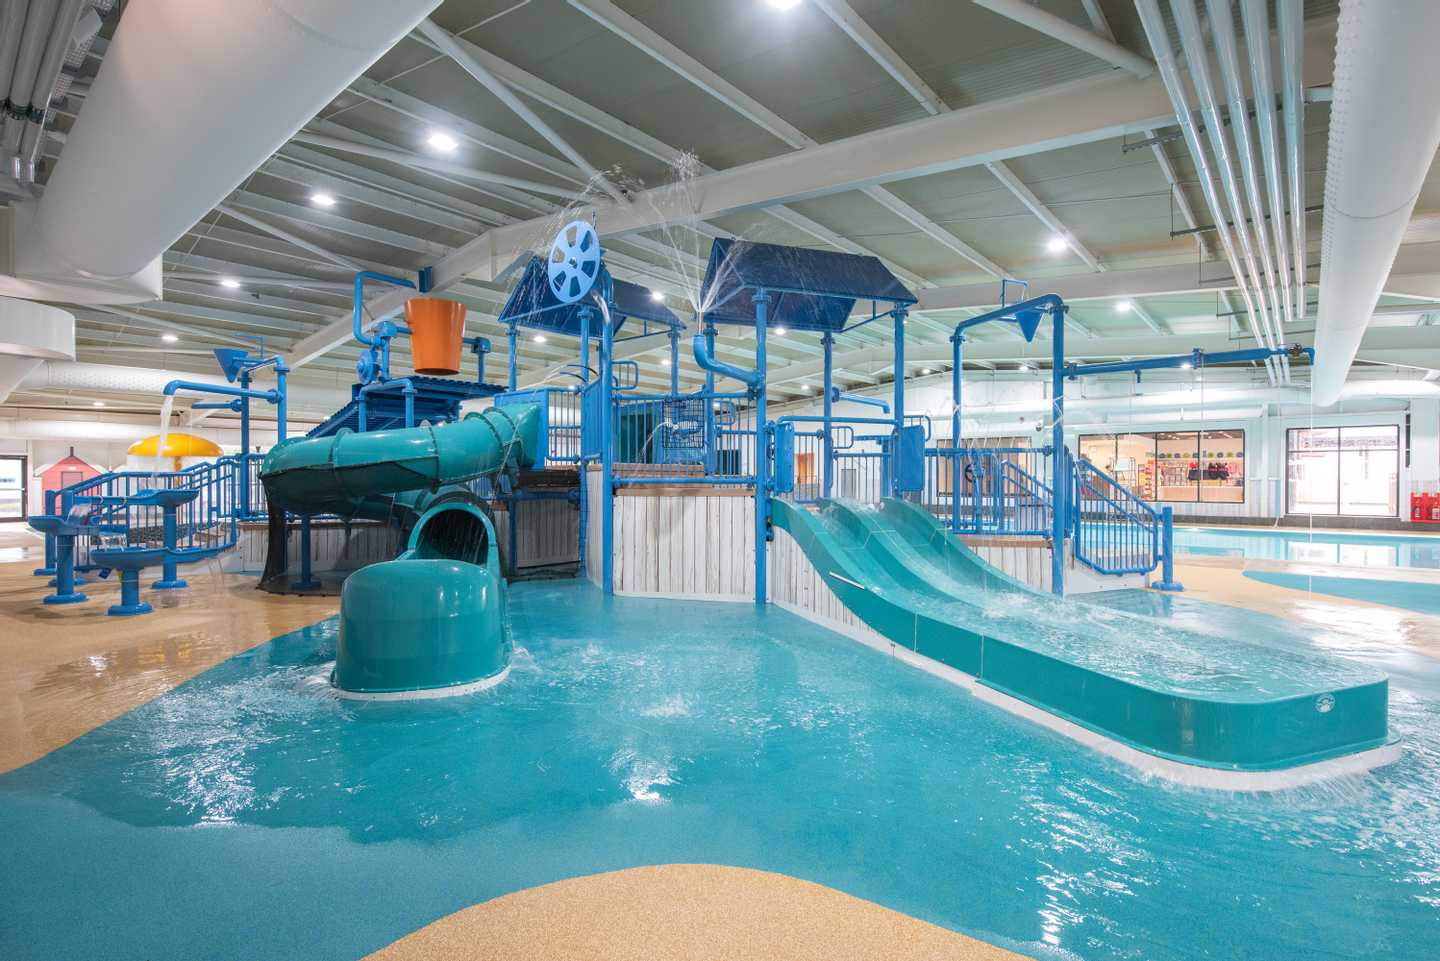 NEW - The Shore Water Park indoor pool